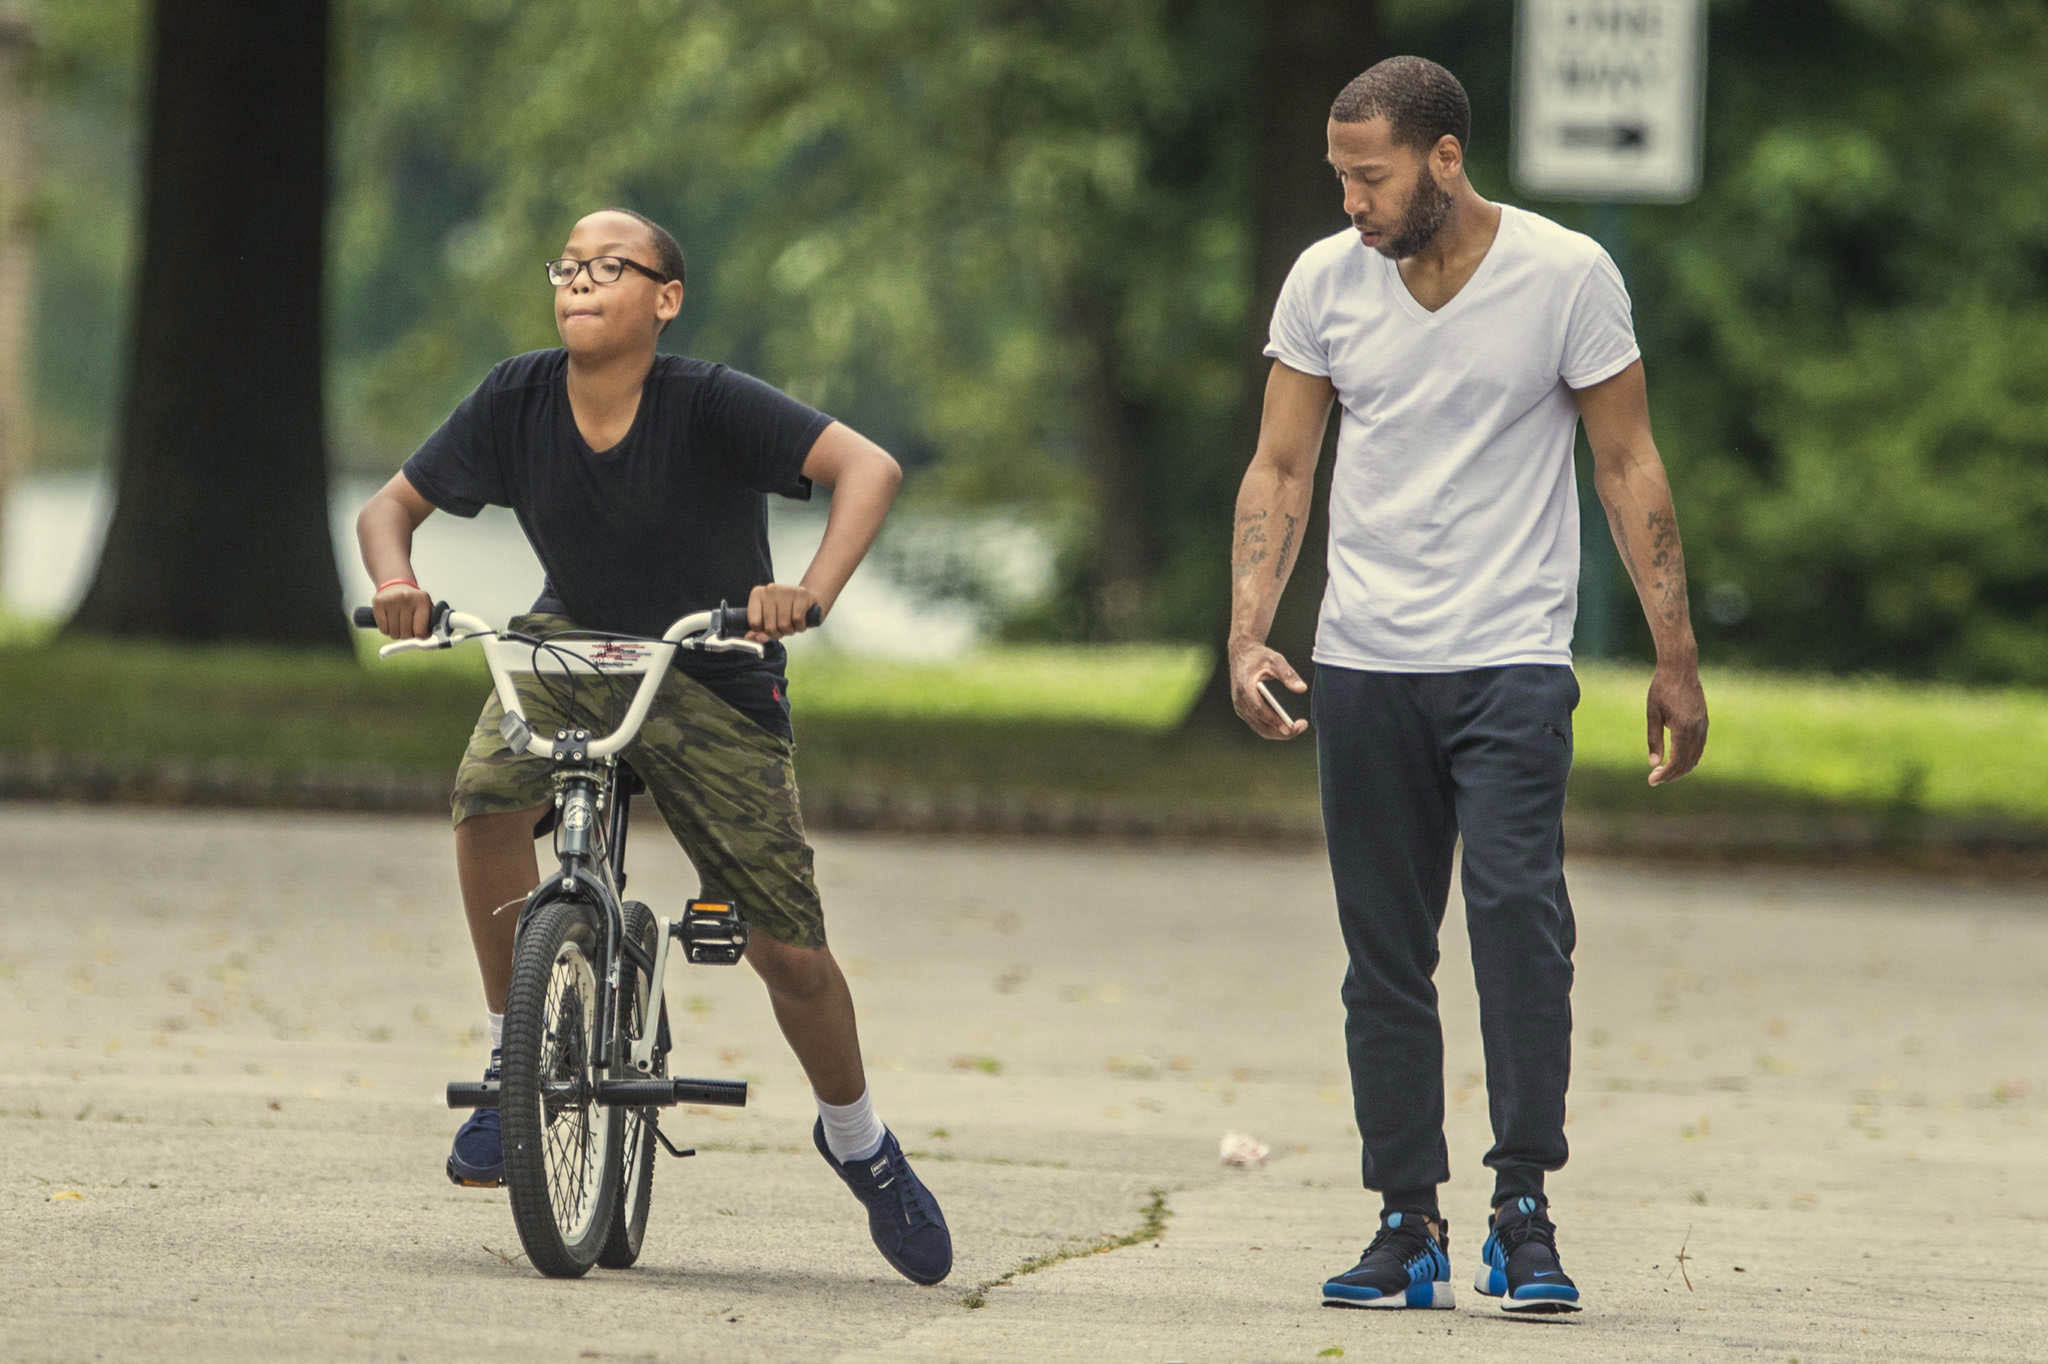 Tykee White Jr, is taught how to ride a bicycle by his father Tyree at FDR park in S. Philadelphia. MICHAEL BRYANT / Staff Photographer